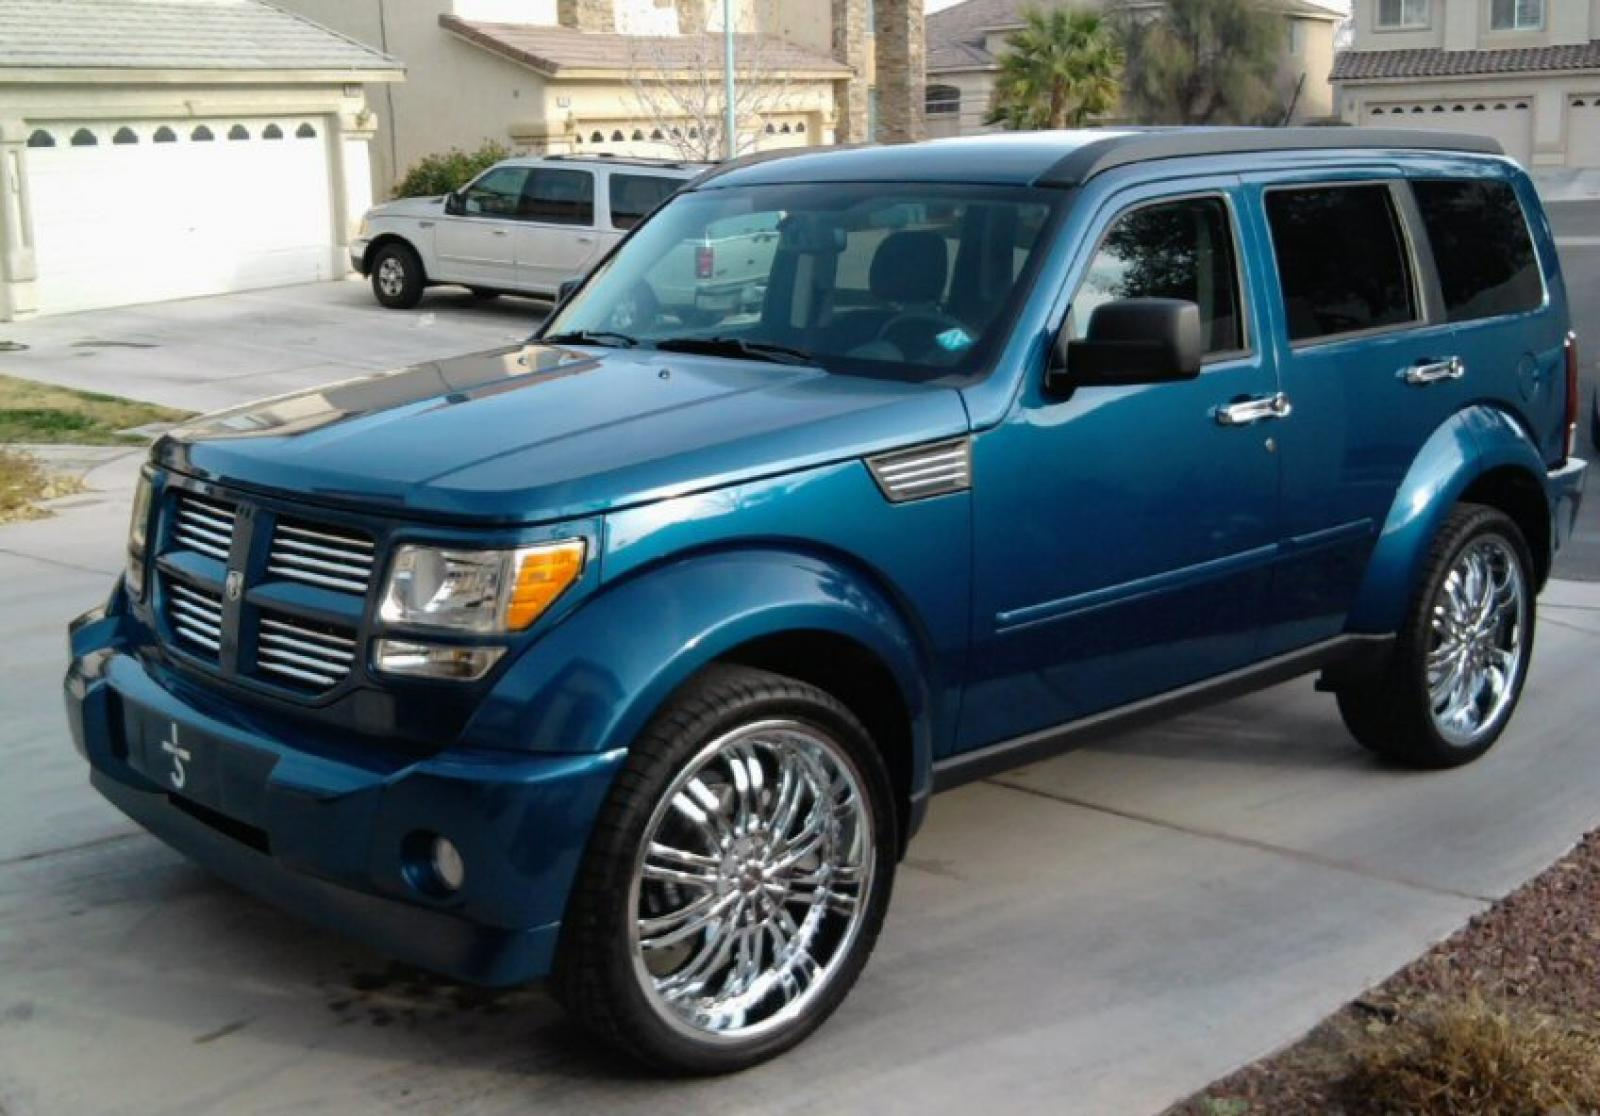 2010 dodge nitro information and photos zombiedrive. Black Bedroom Furniture Sets. Home Design Ideas